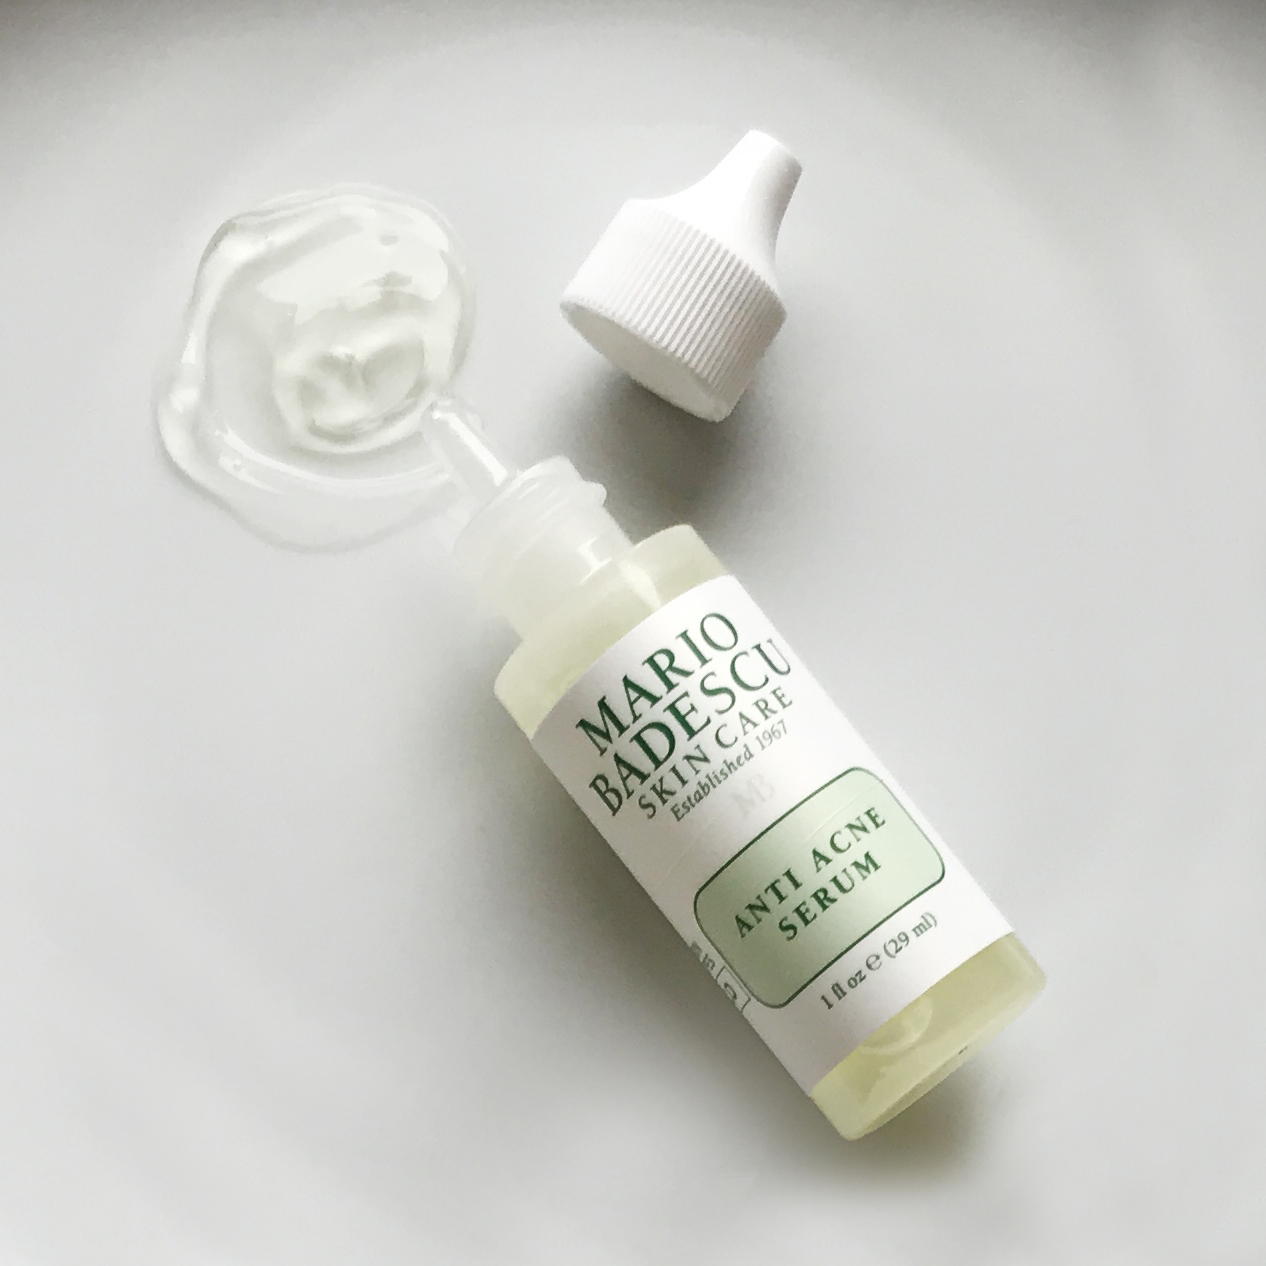 Mario Badescu Anti Acne Serum Swatch